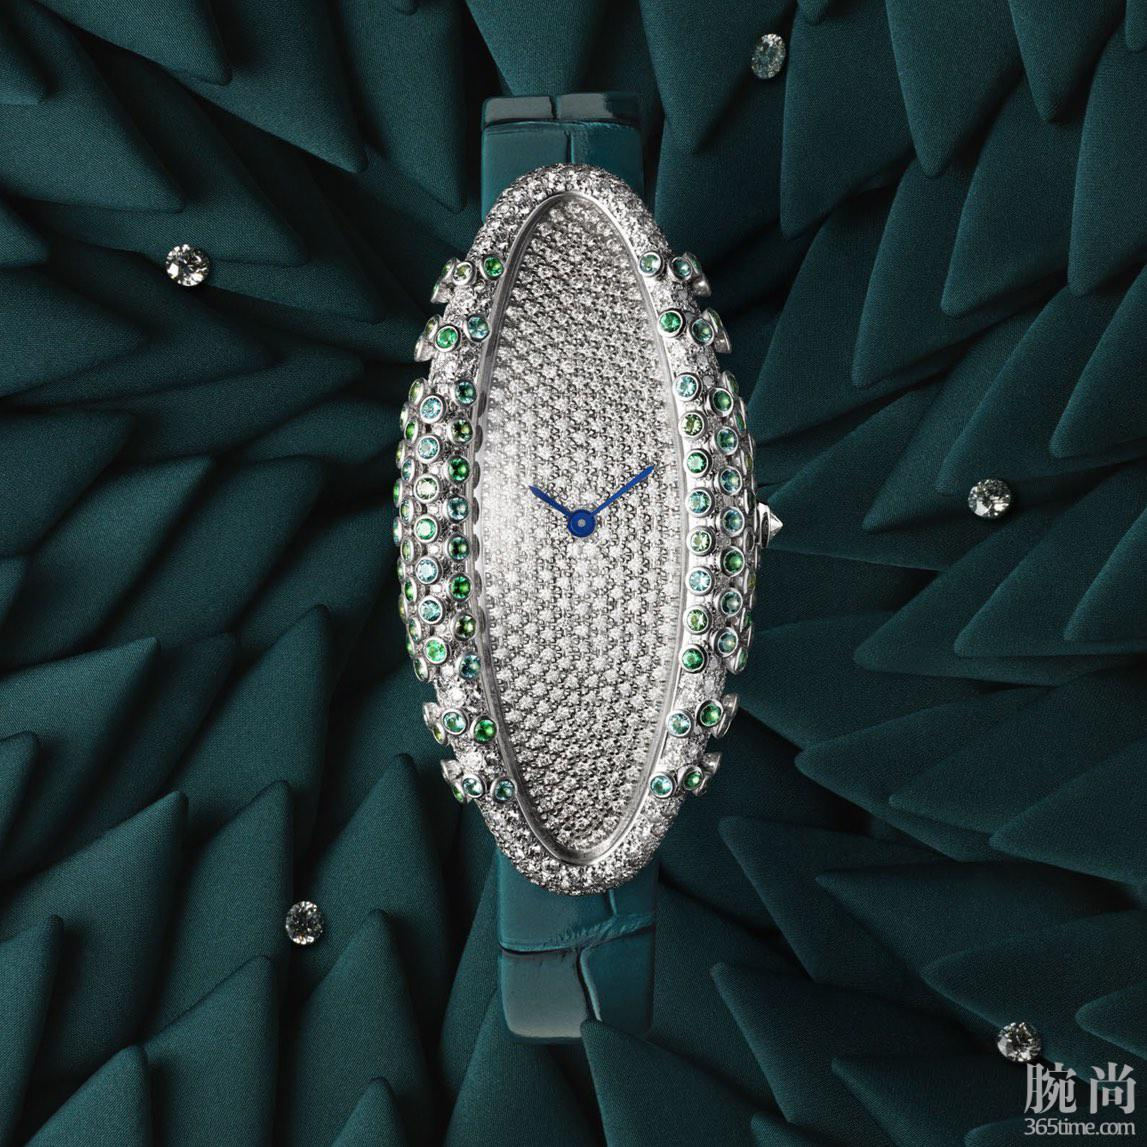 SIHH-2019-Cartier-Libre-Jewelry-collection-5.jpg